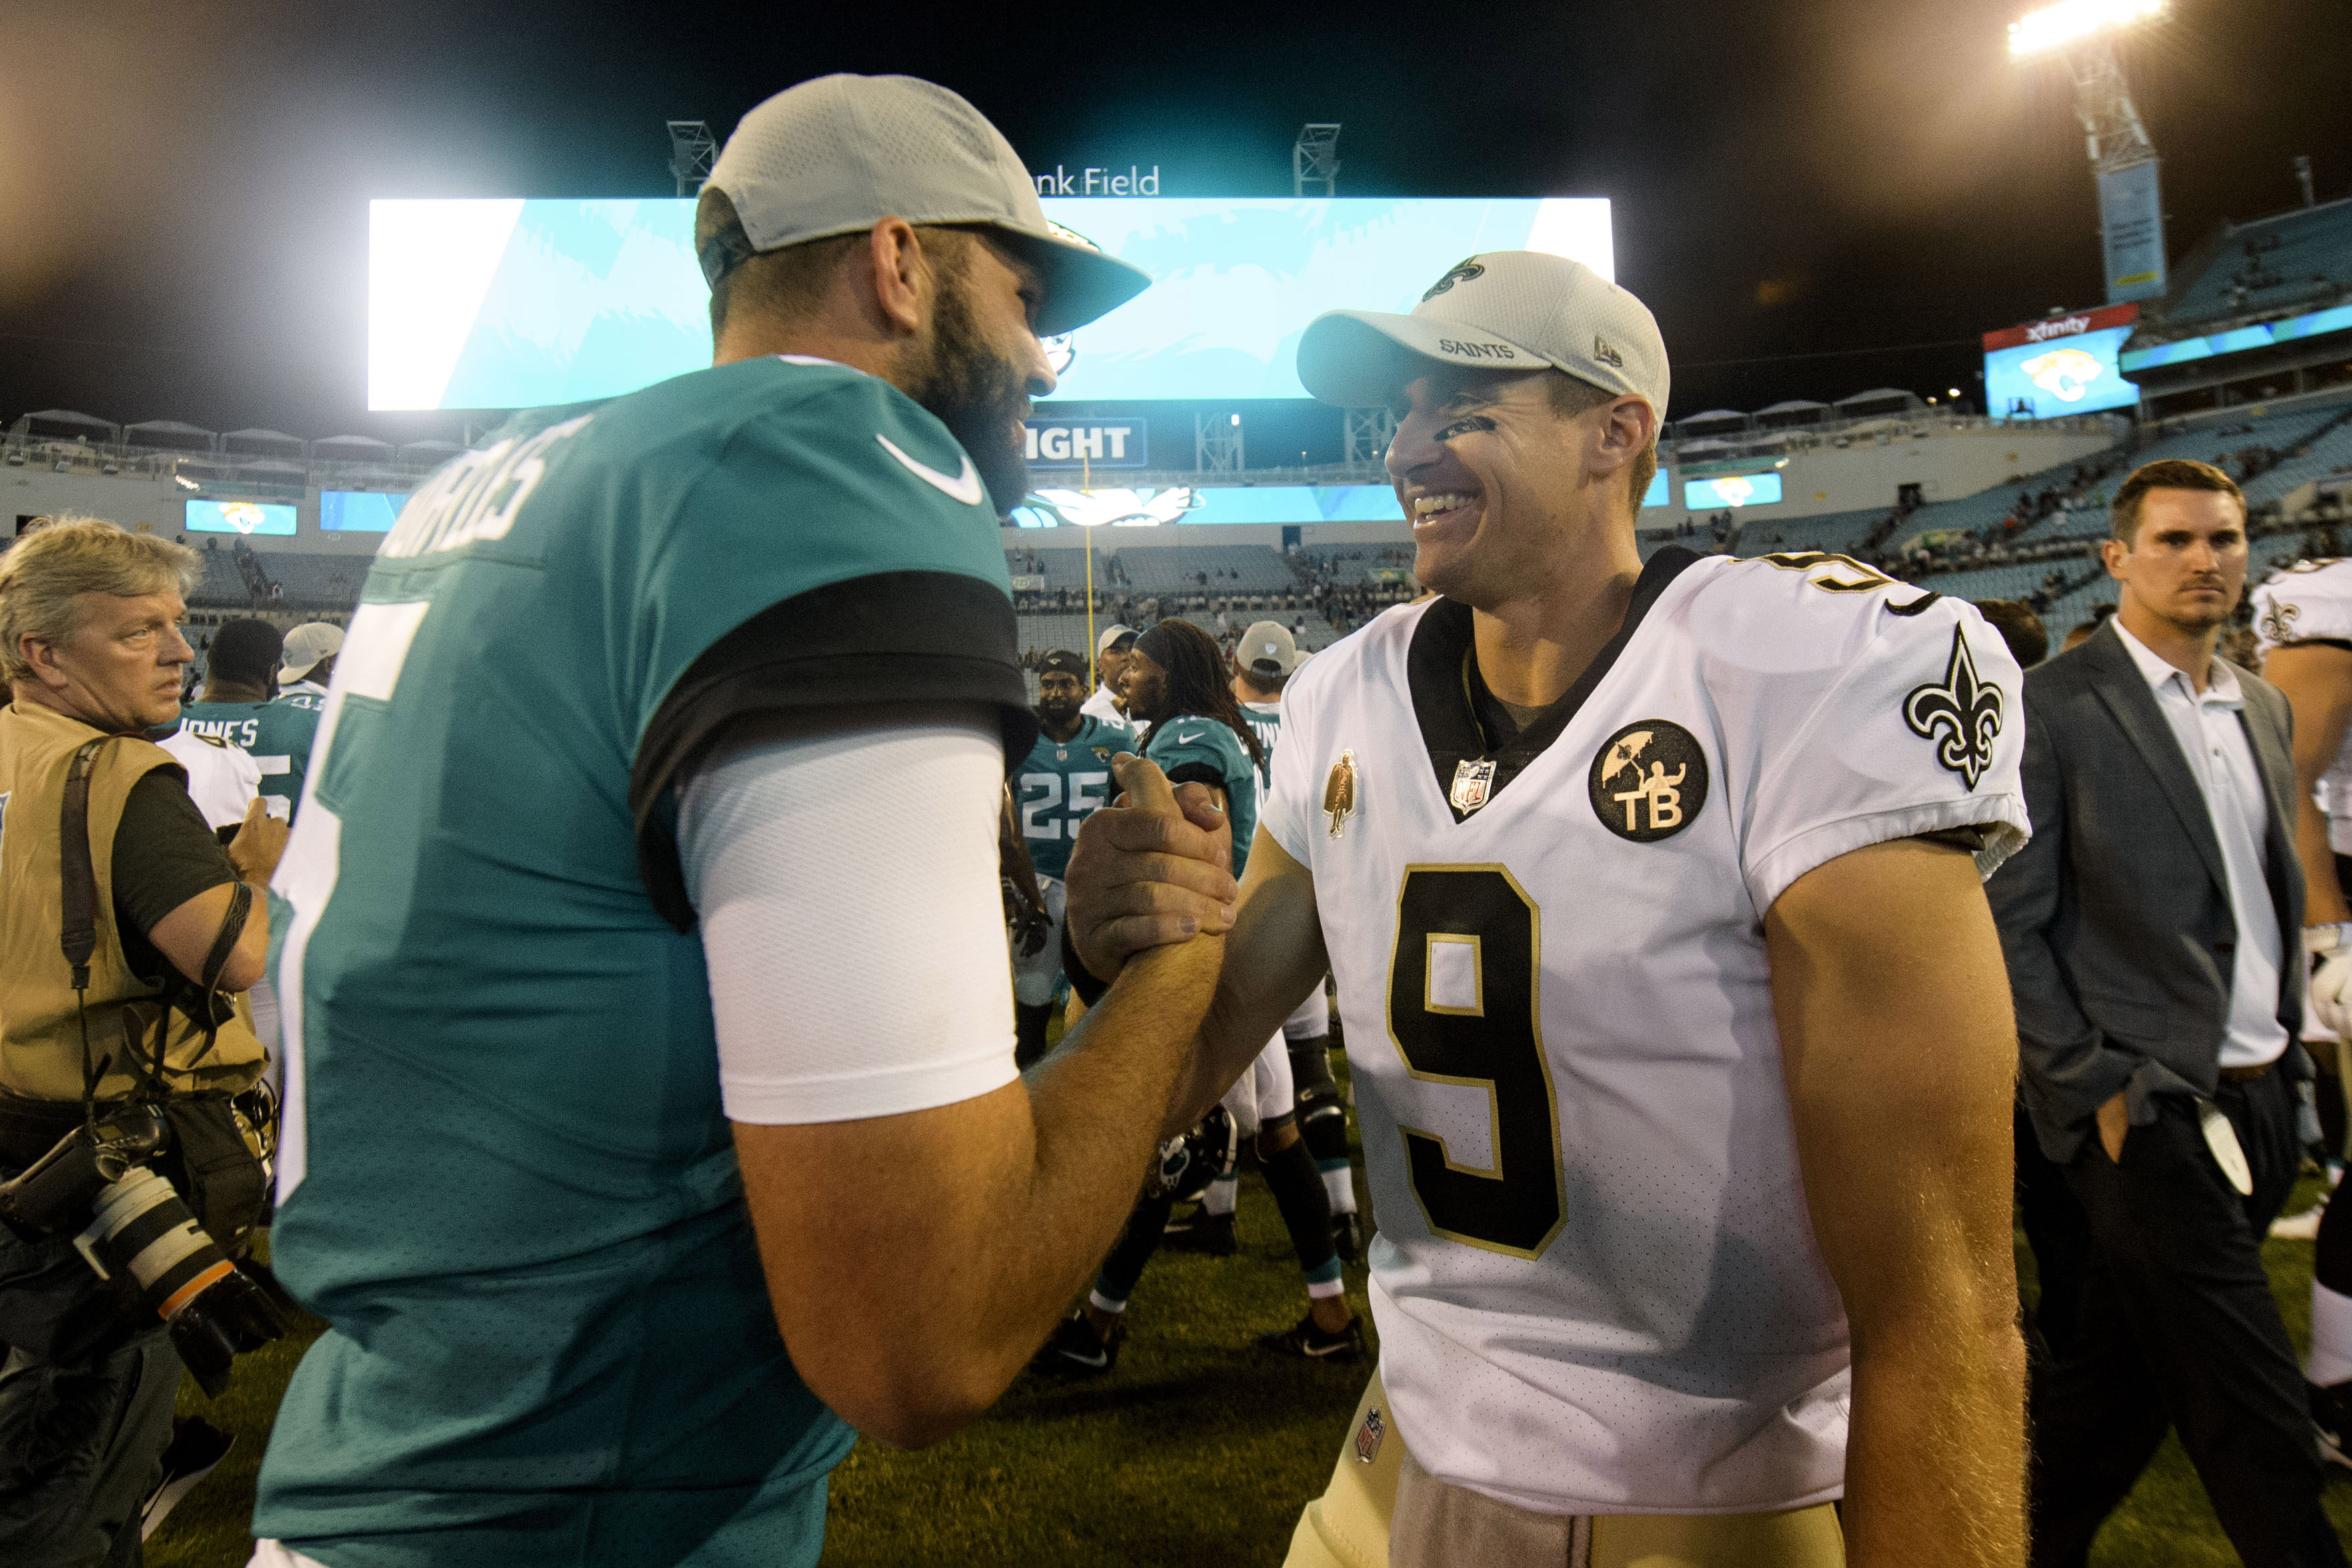 Aug 9, 2018; Jacksonville, FL, USA; Jacksonville Jaguars quarterback Blake Bortles (5) and New Orleans Saints quarterback Drew Brees (9) shake hands after their game at TIAA Bank Field. Mandatory Credit: Douglas DeFelice-USA TODAY Sports